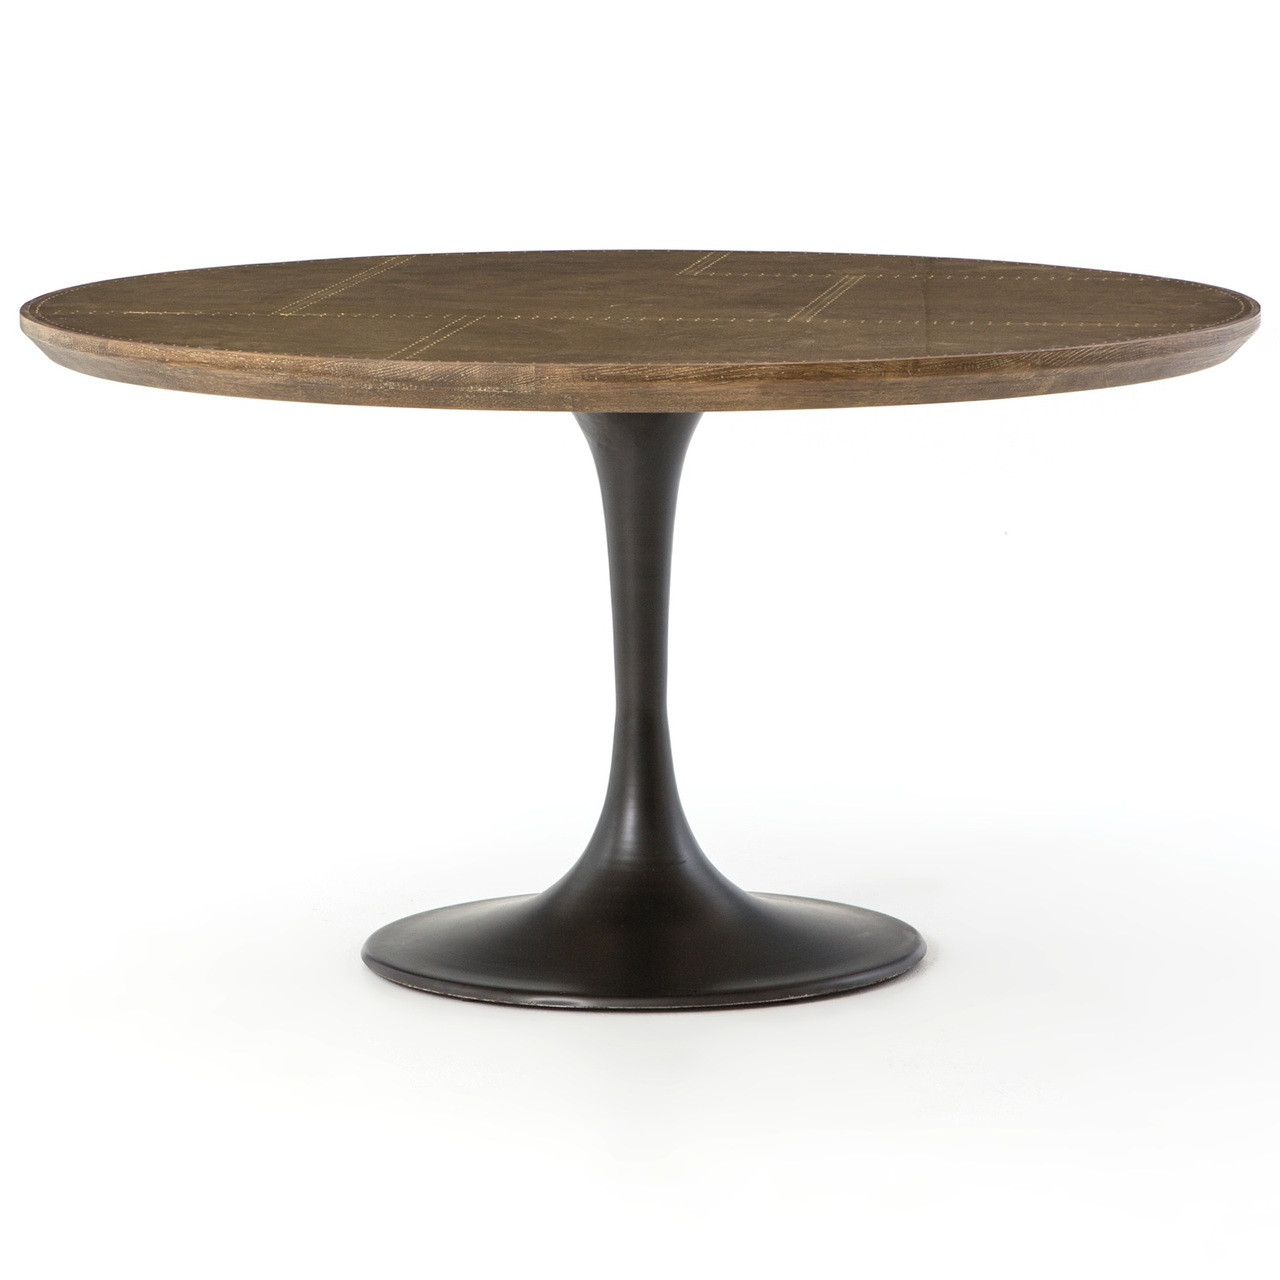 Aero Tulip Industrial Brass Clad Top Round Dining Table 55. Modern   Vintage Industrial Style Furniture   Zin Home